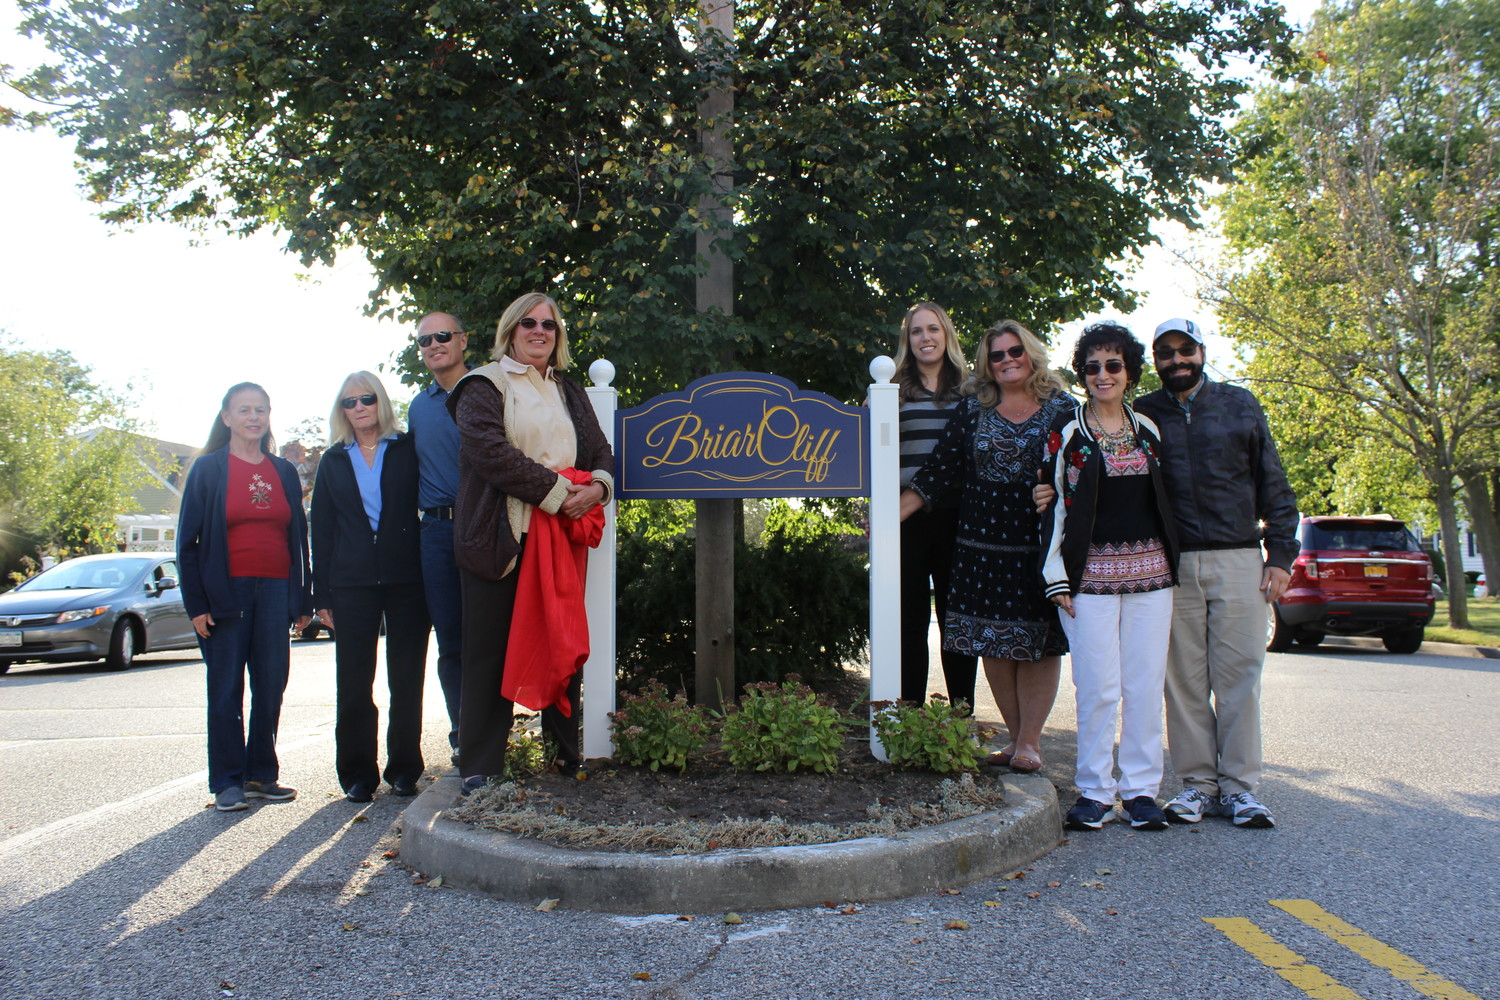 Community members gathered on Sept. 29 to unveil a new sign welcoming residents into the BriarCliff section of North Merrick.